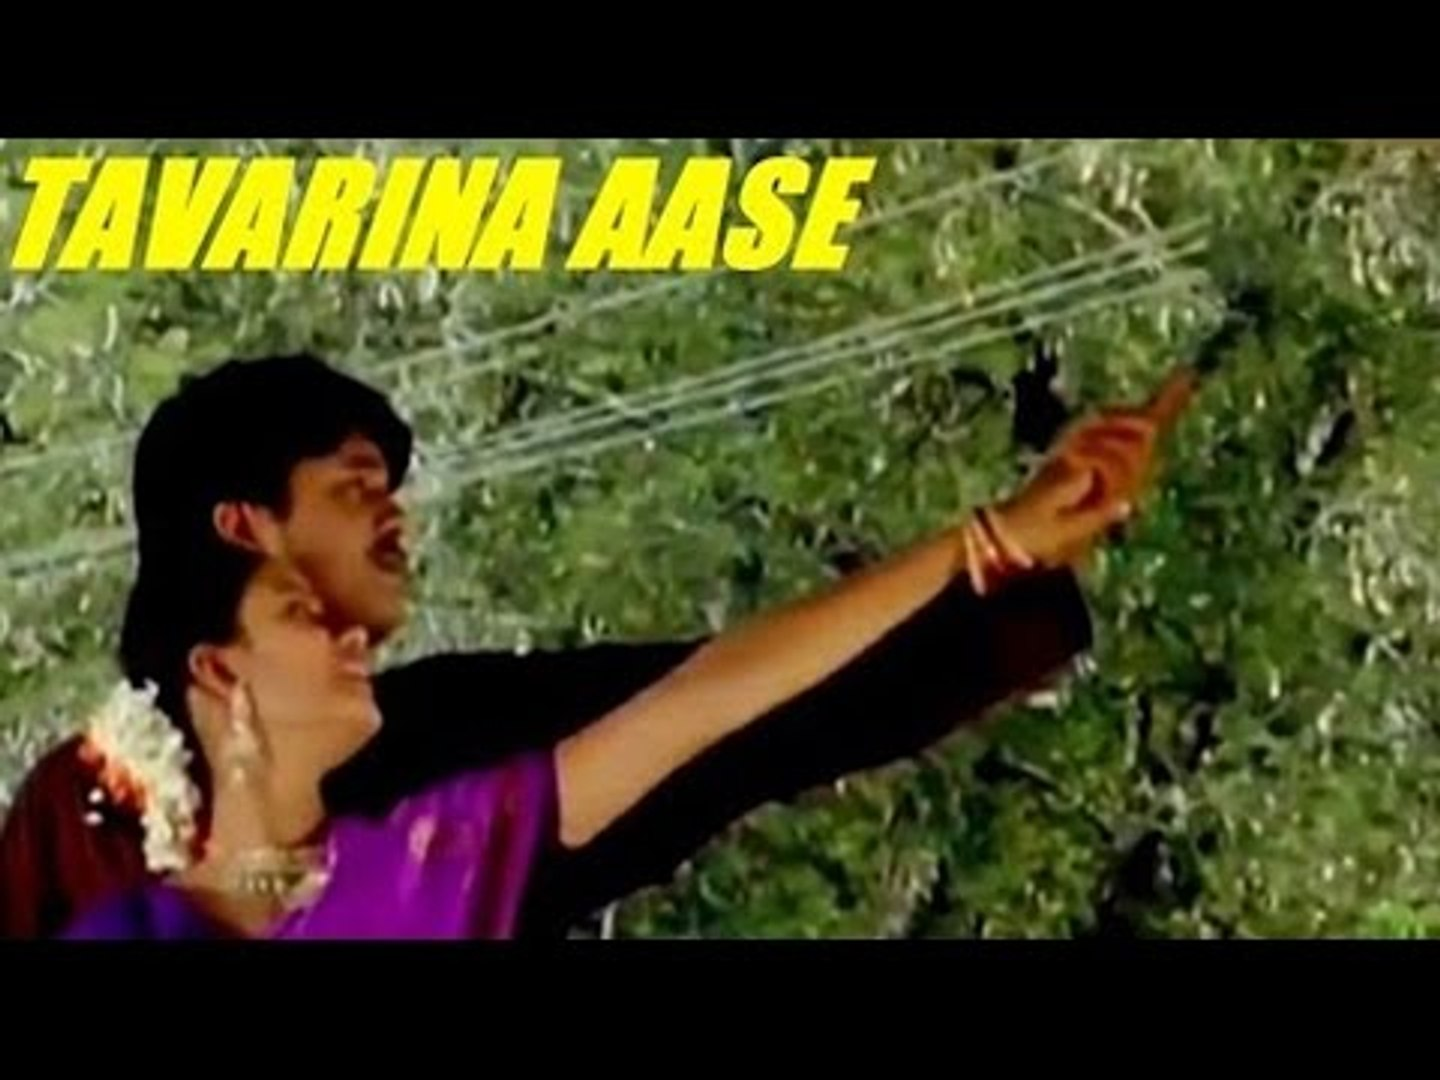 Thavarina Aase Kannada Romantic Movies Full HD |New Kannada Movies Full | Latest Kannada Movies 2016